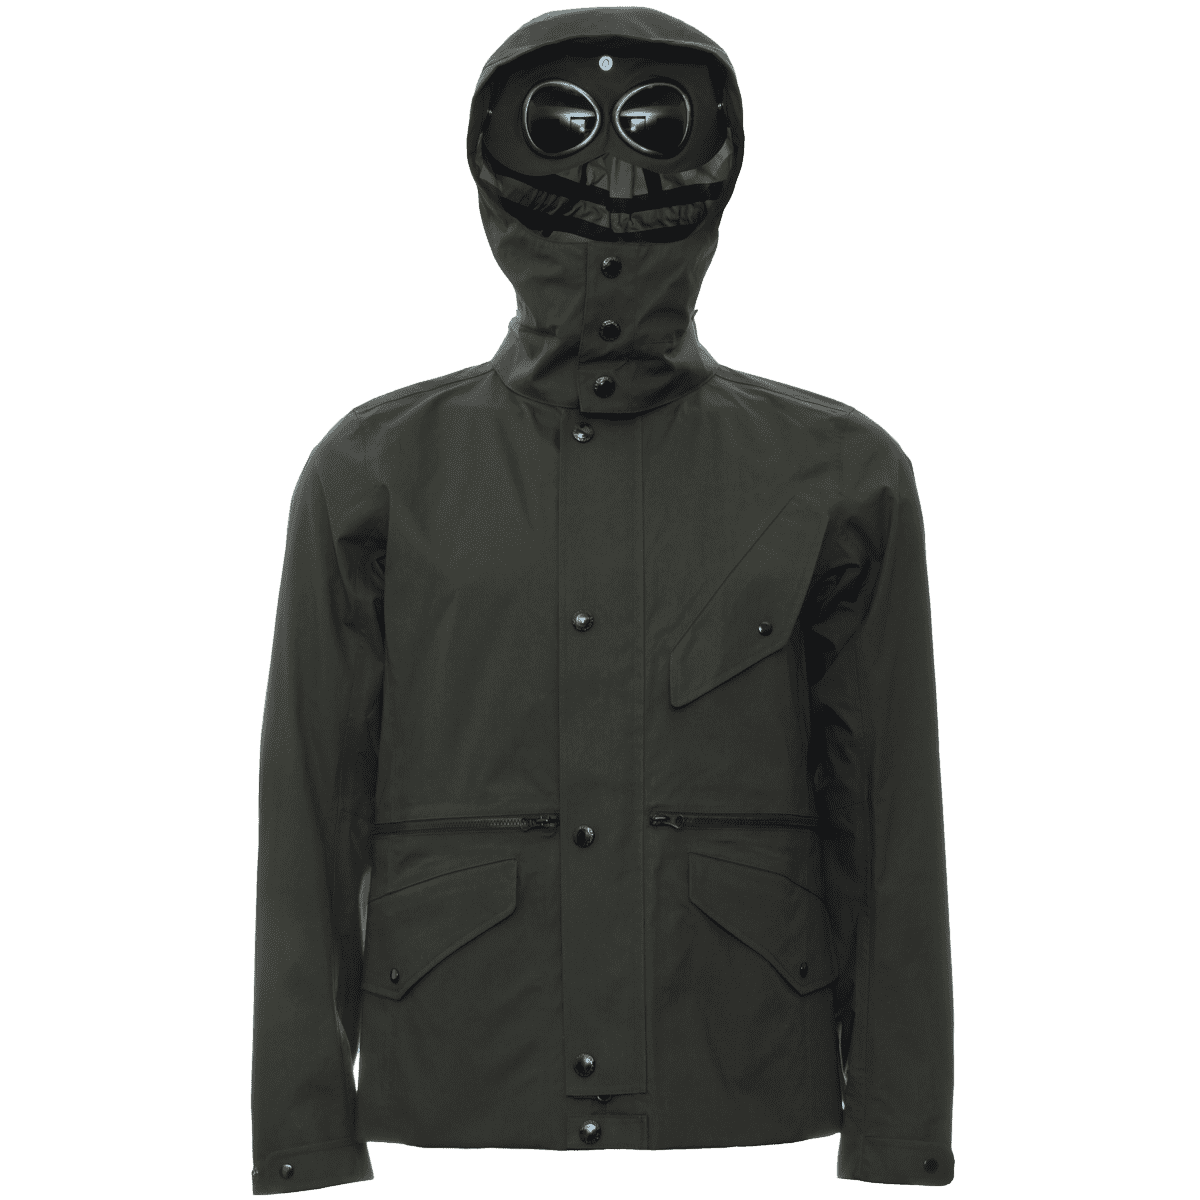 Cabinero Berlin Herrenmode SS17 C.P.Company Goggle Jacket 02CMOW122A005001A (8)